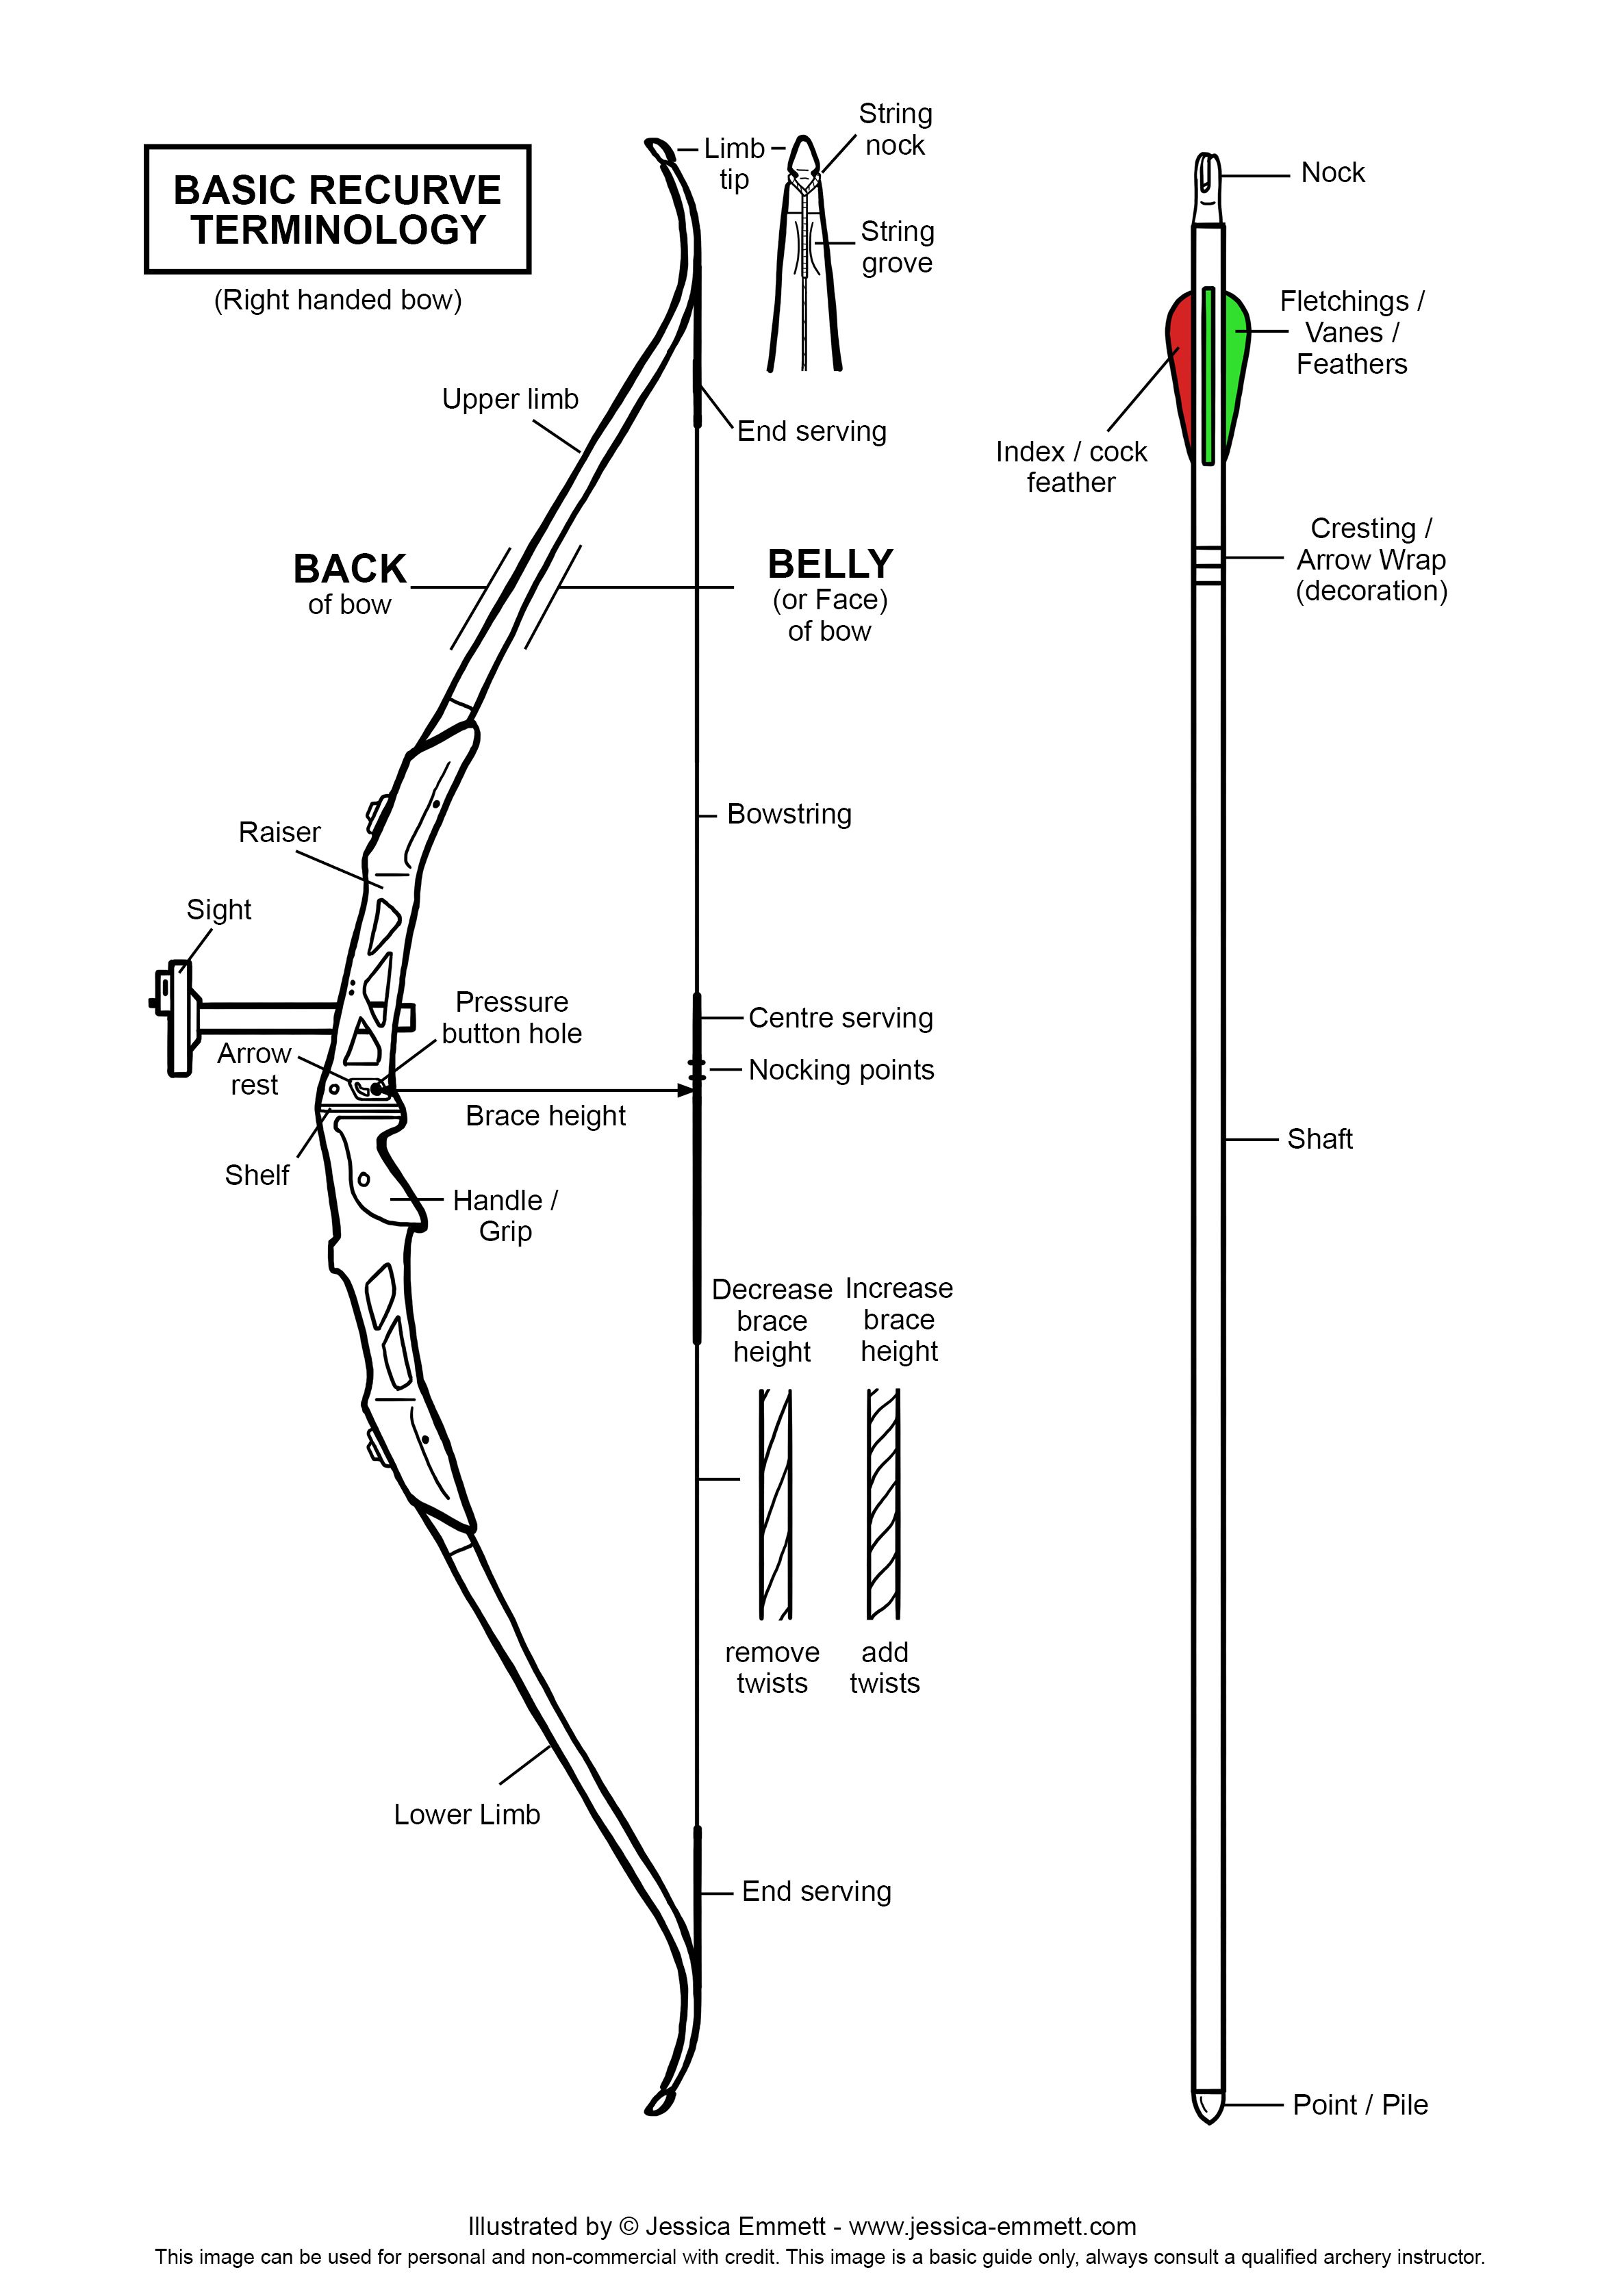 pin by razvan on arcul pinterest archery, bows and diagram Trainer Archery Bow Diagram traditional bow, archery equipment, recurve bows, archery bows, bow arrows, how